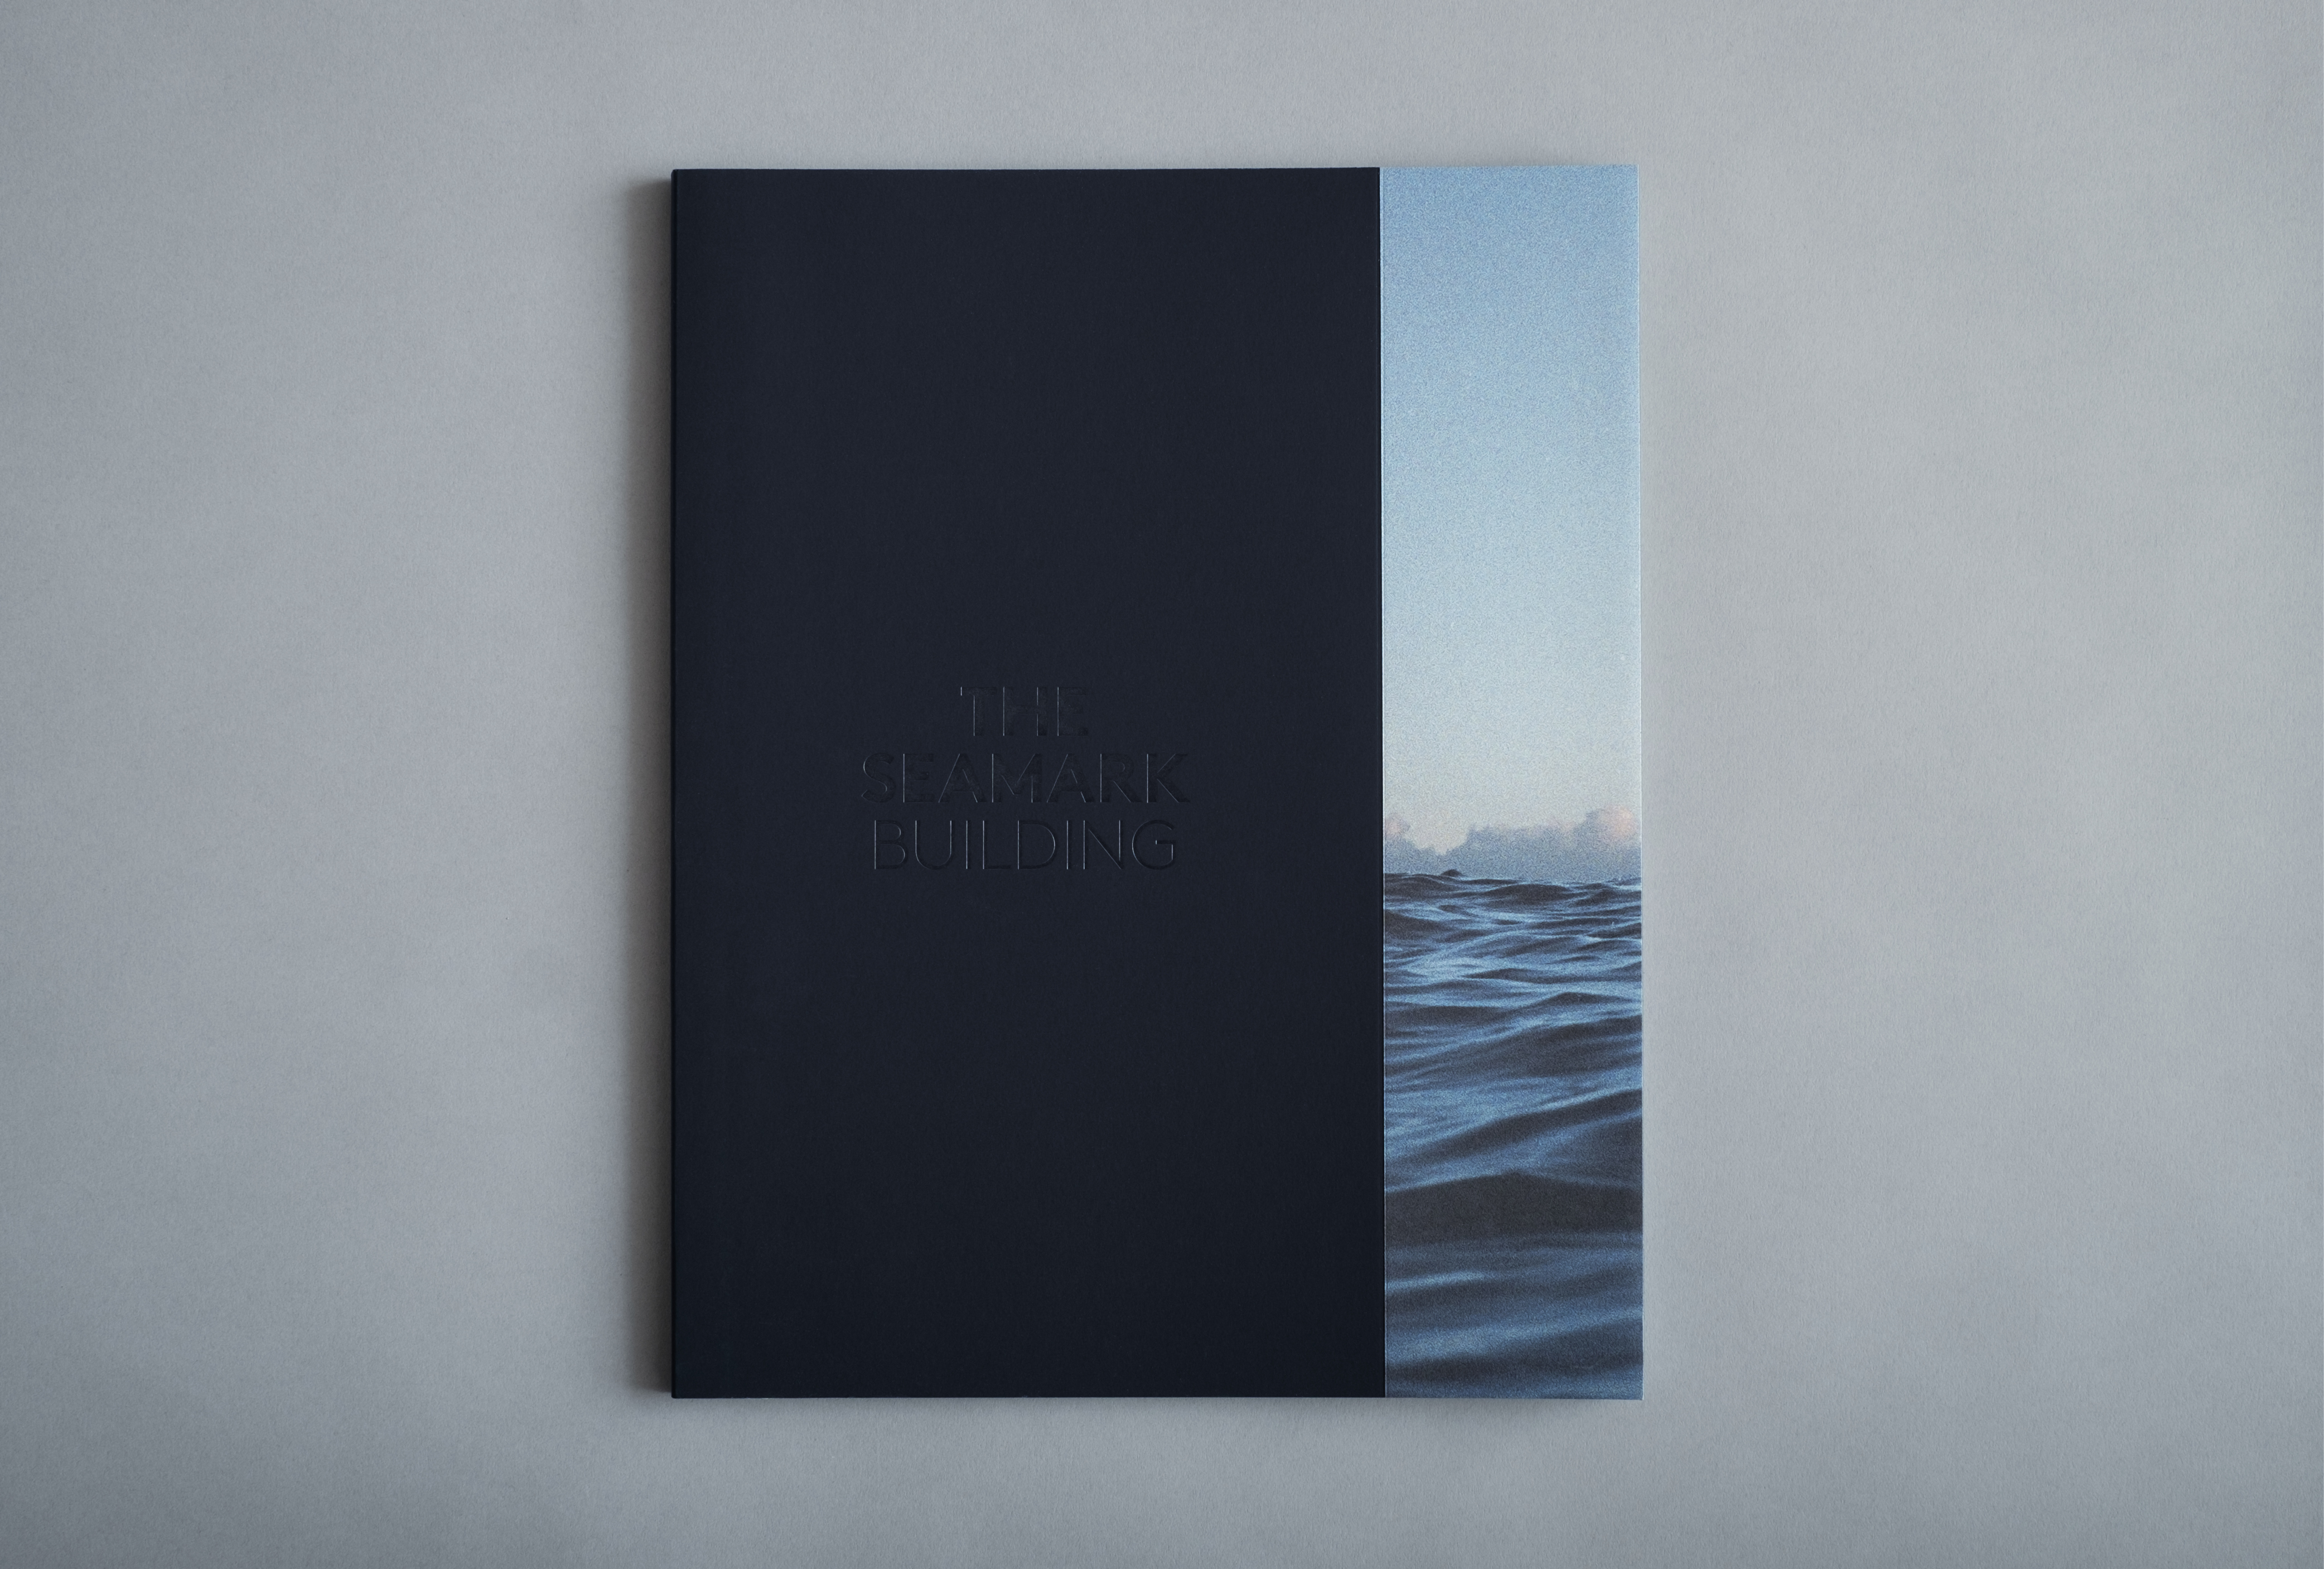 Cover image: The Seamark Building Brochure